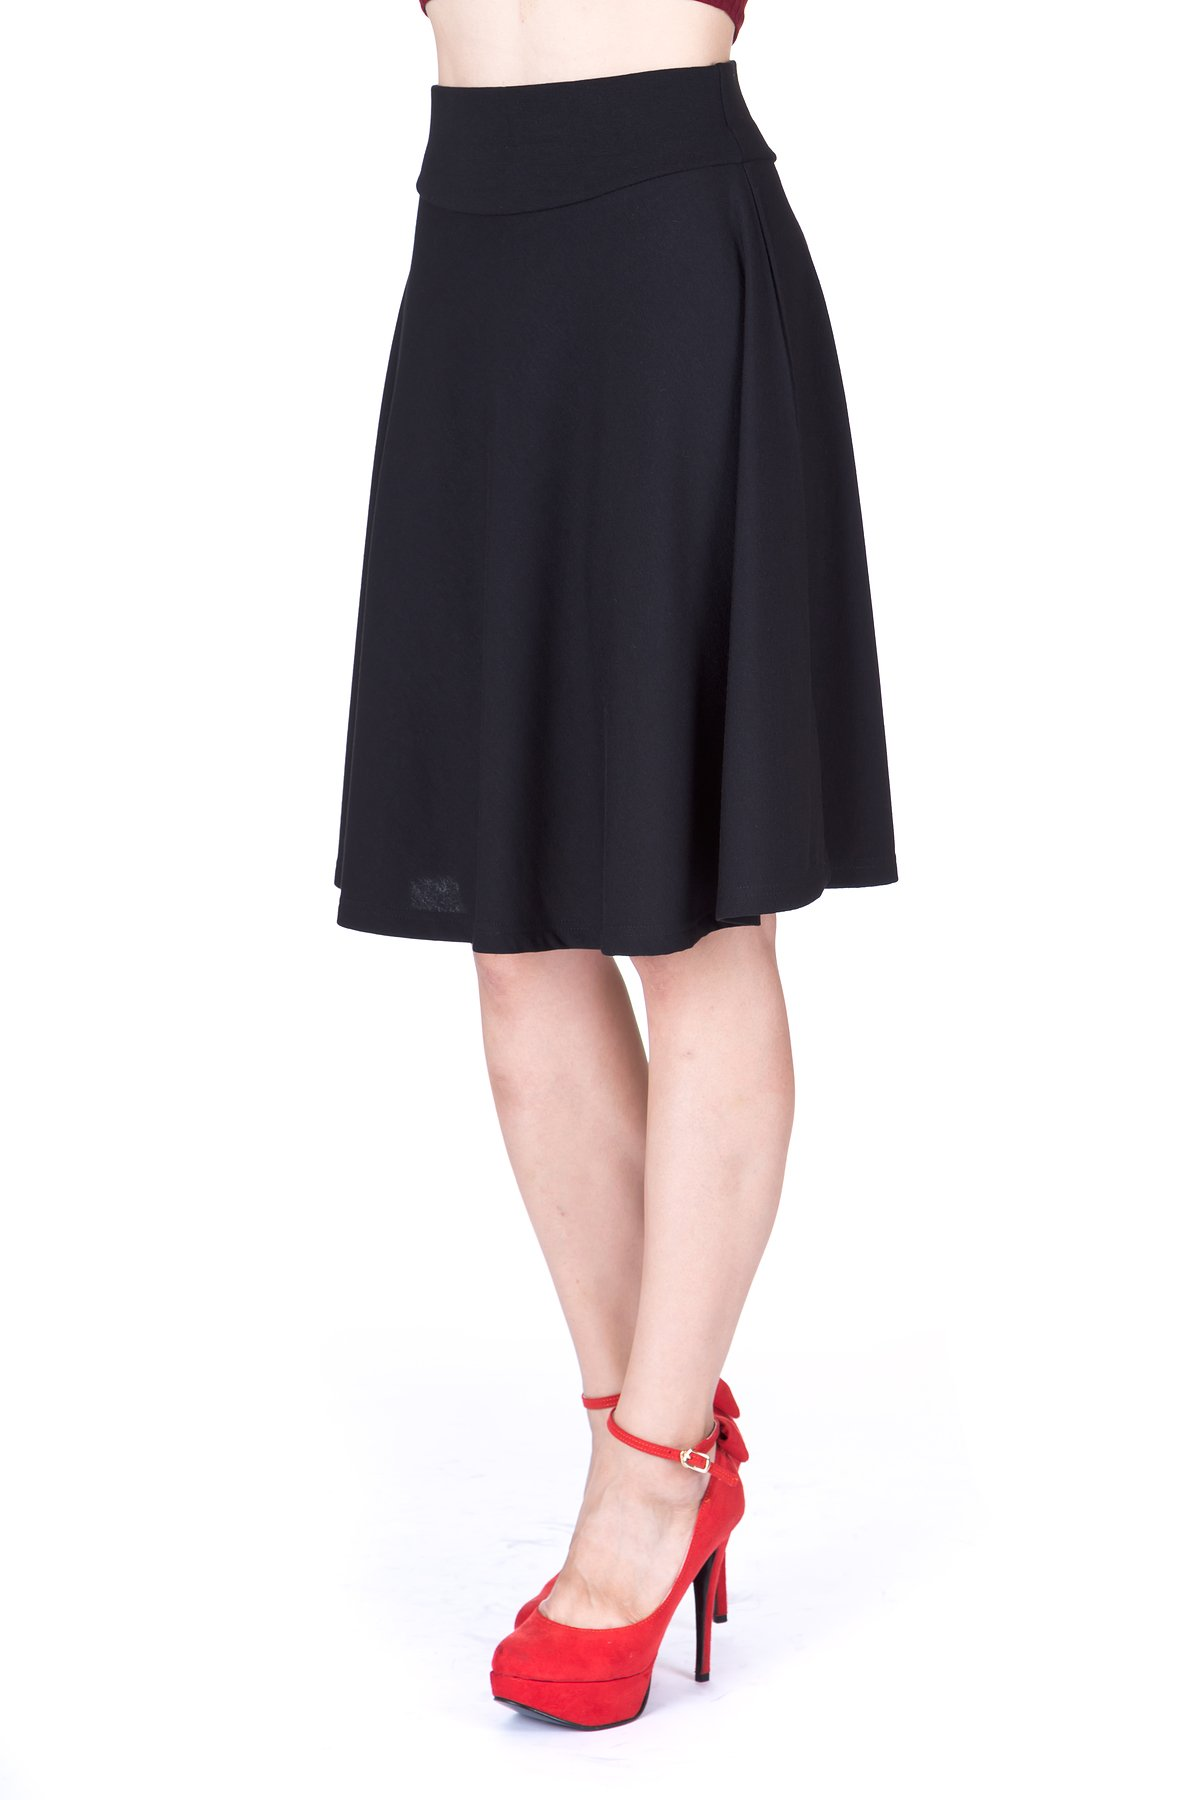 Impeccable Elastic High Waist A-line Full Flared Swing Skater Knee Length Skirt (M, Black) by Dani's Choice (Image #2)